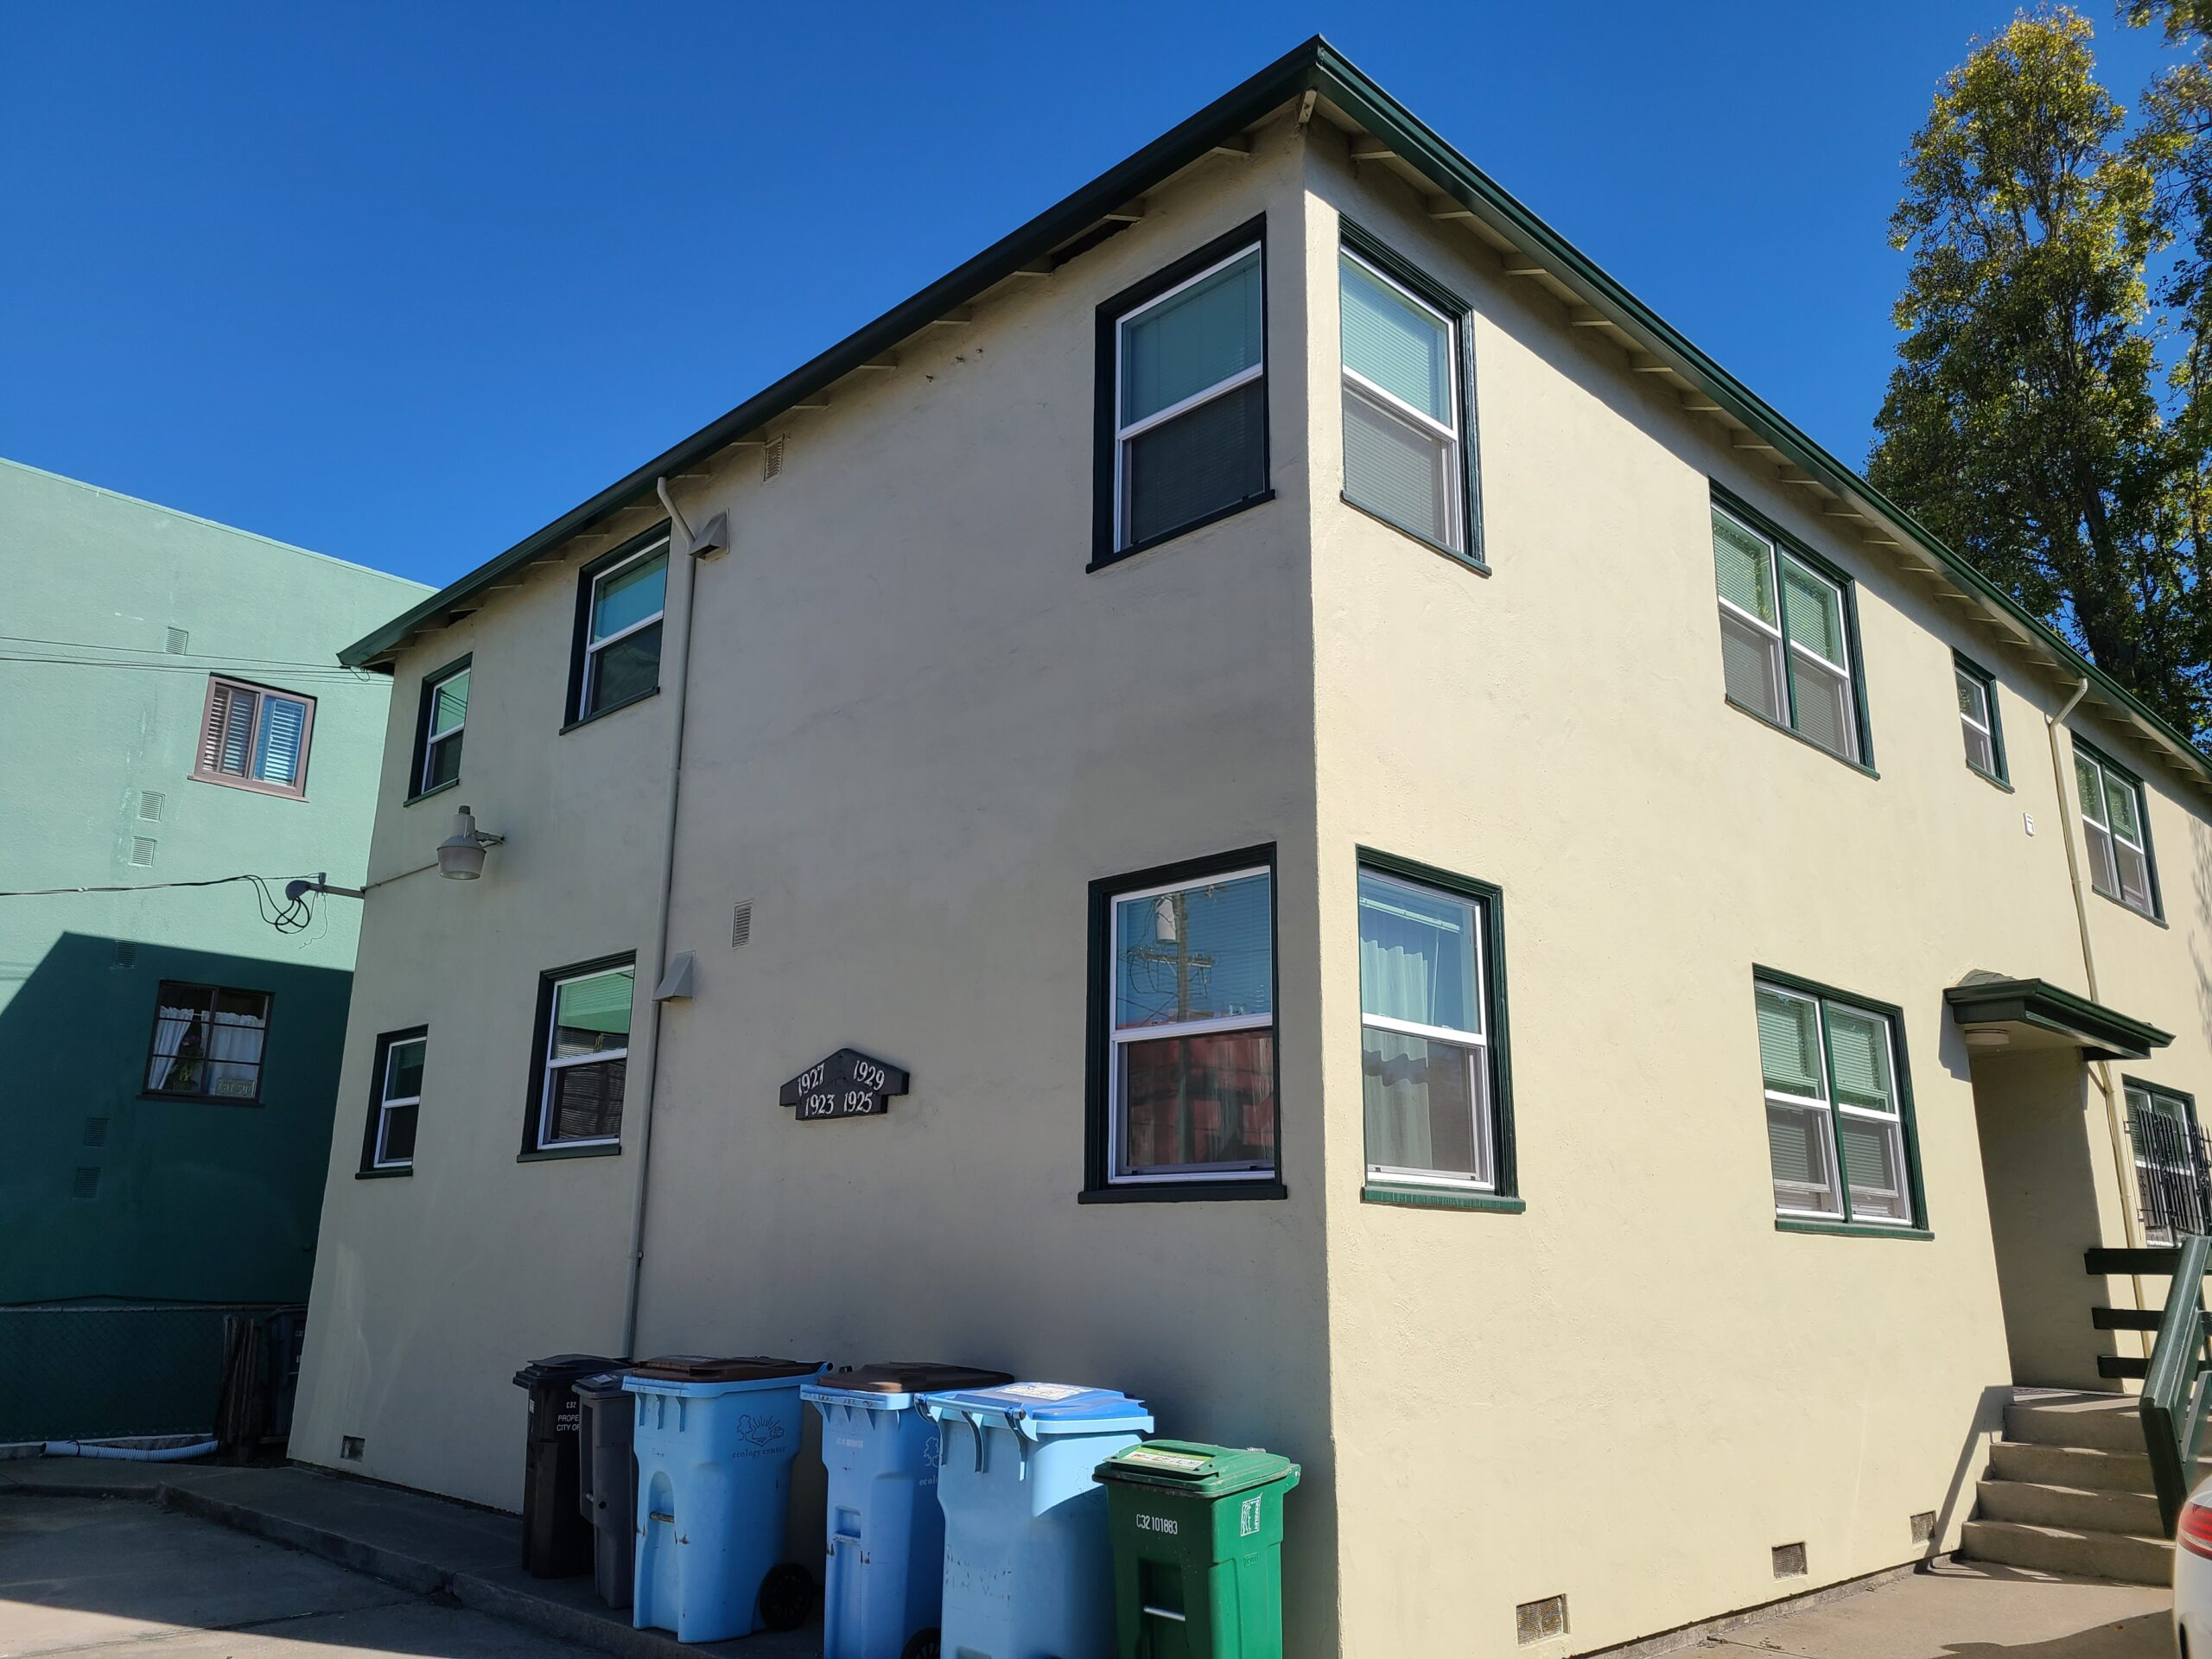 1927 Curtis Street, Berkeley. CA 94702